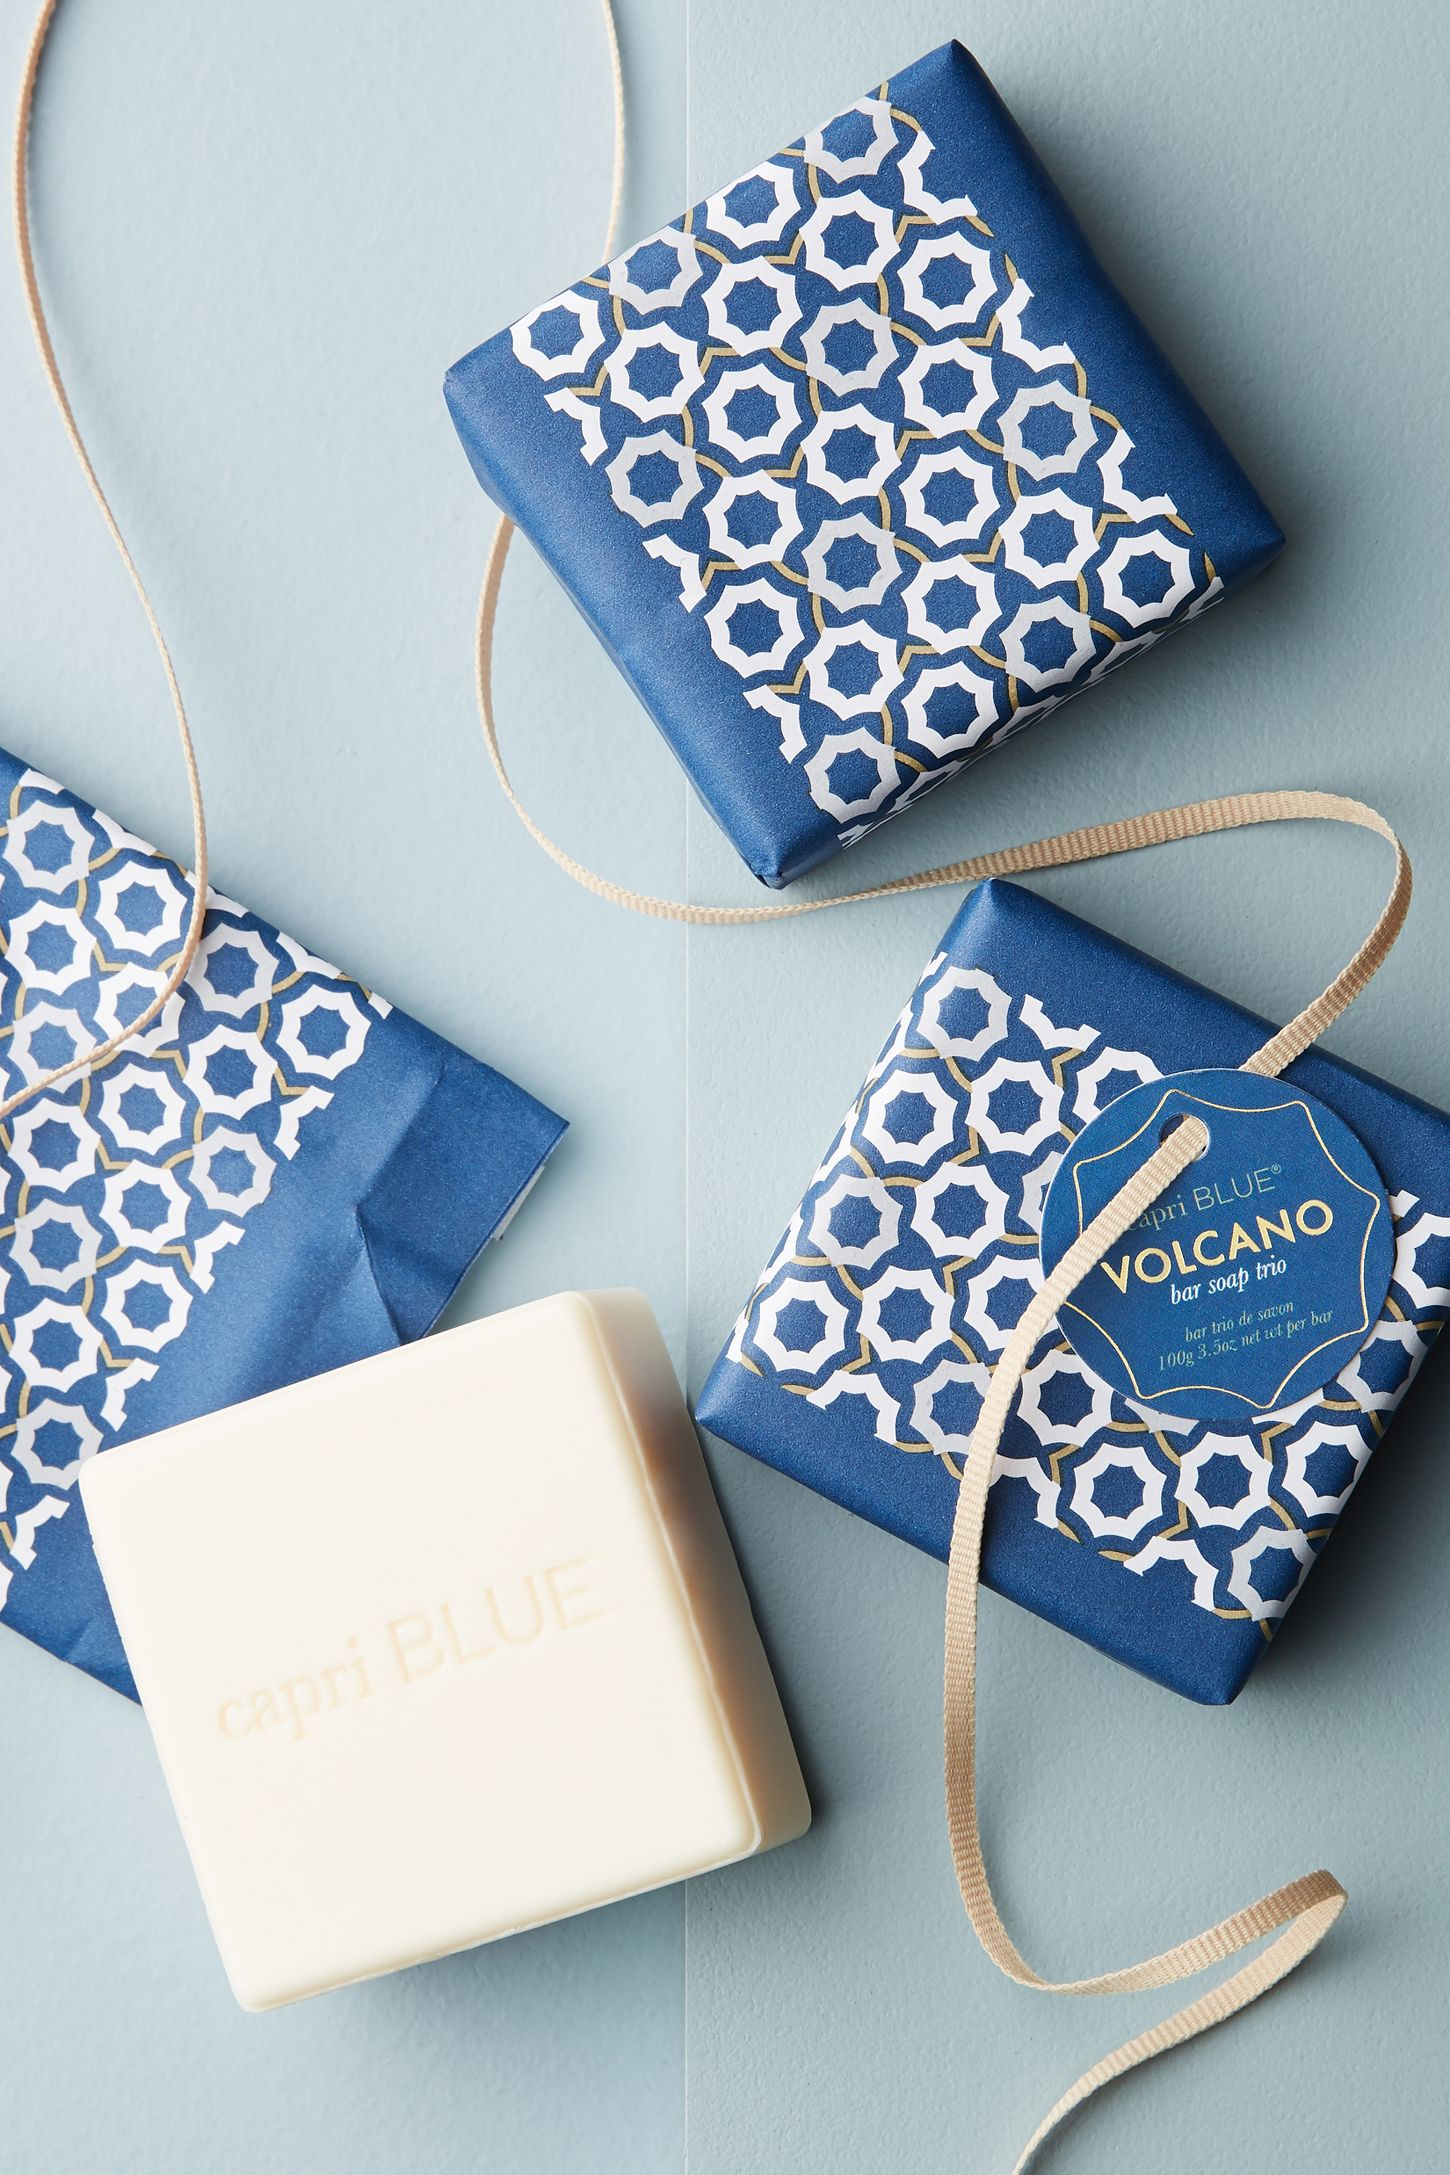 Capri Blue - Beauty Products & Bath Products | Anthropologie